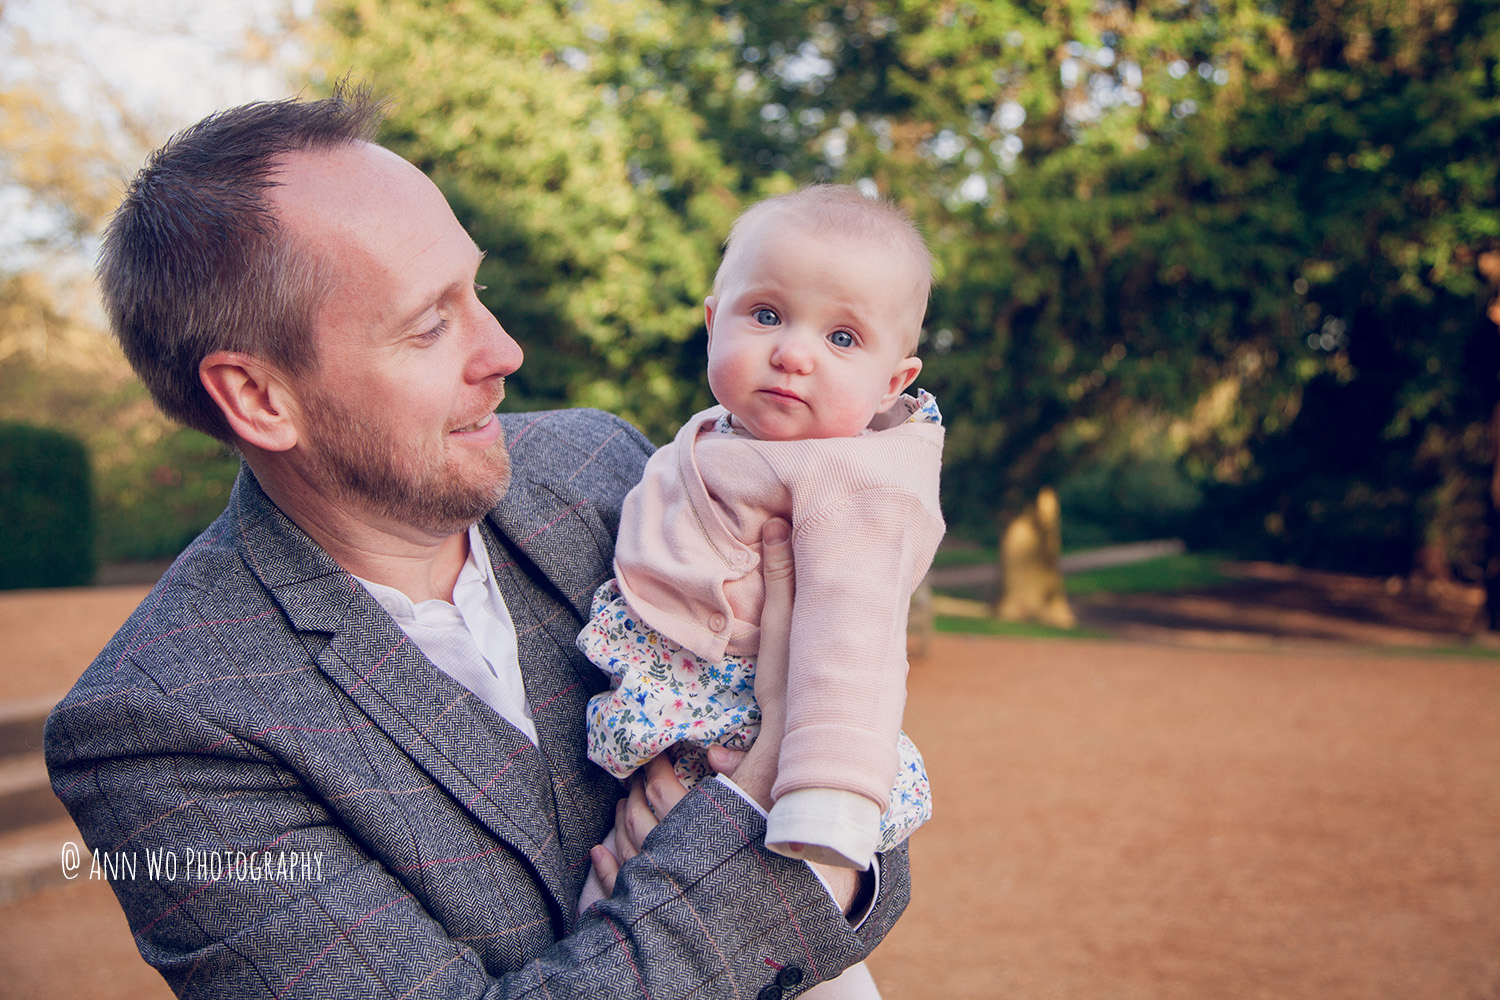 outdoor-lifestyle-family-photo-session-ann-wo-london-36.JPG